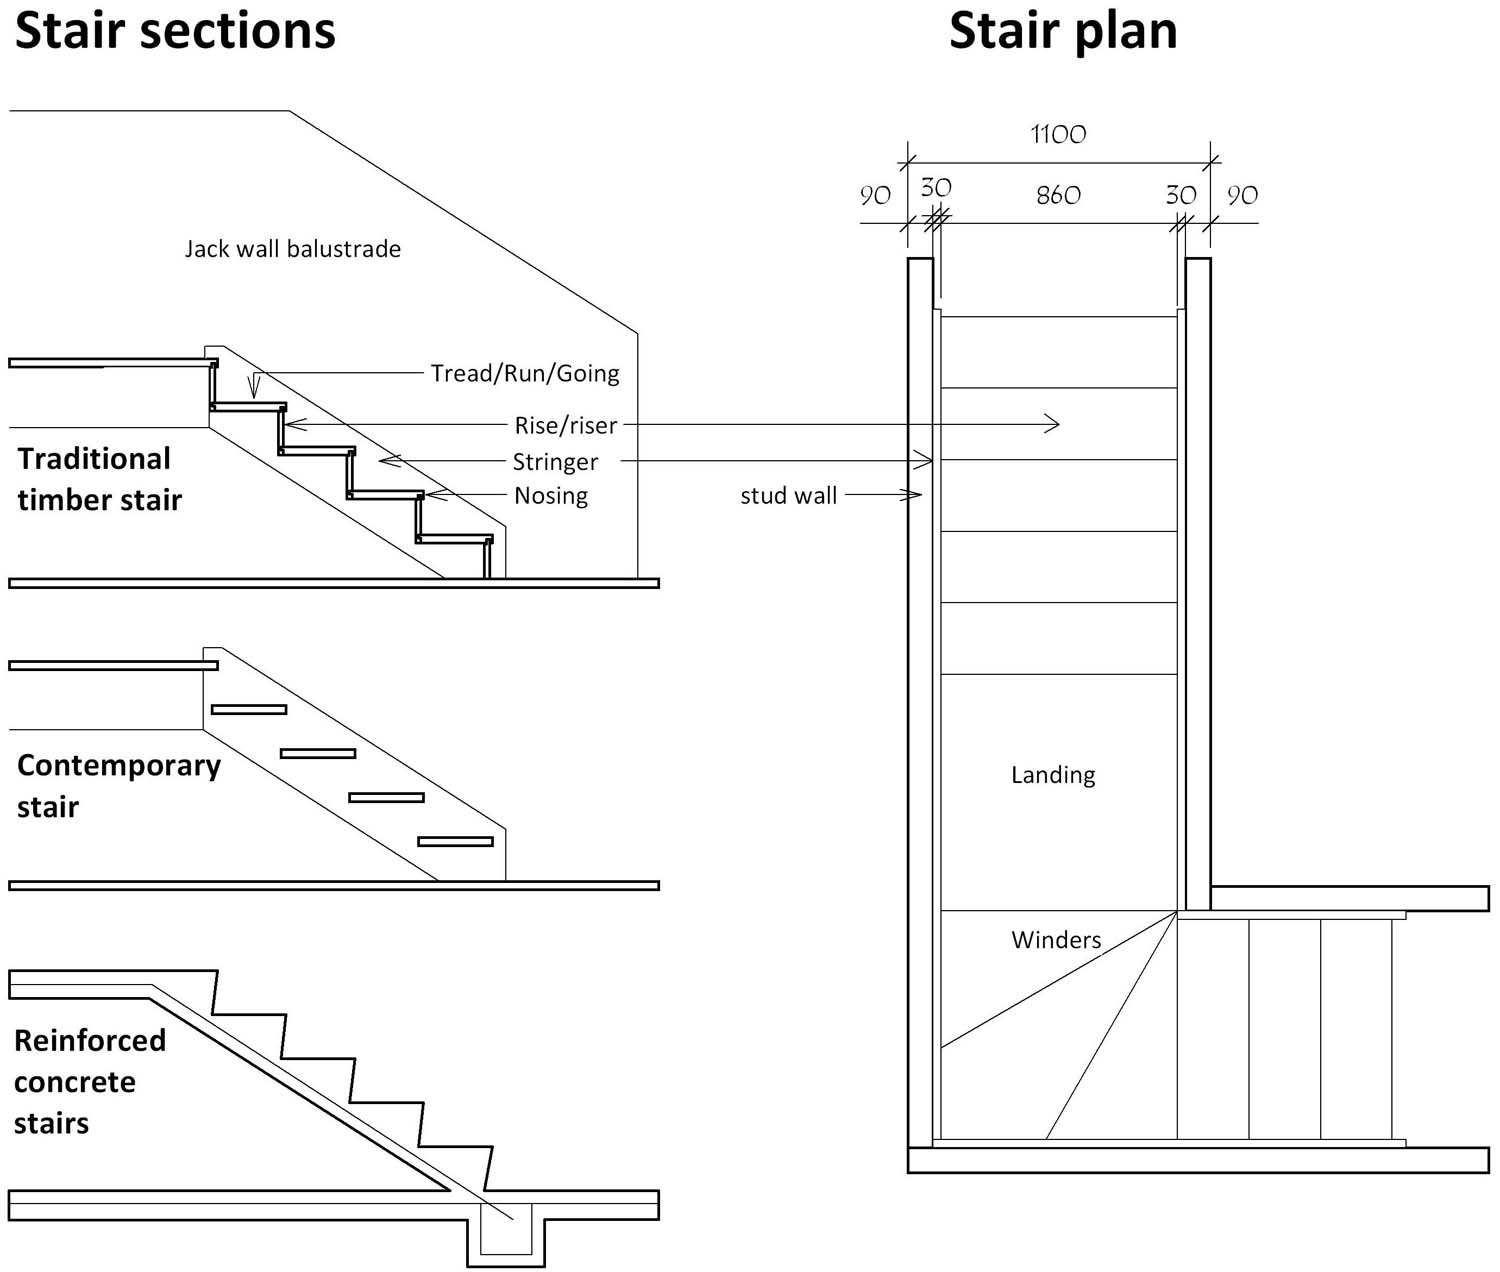 Drawn stairs dimension practice & stairs staircases design &